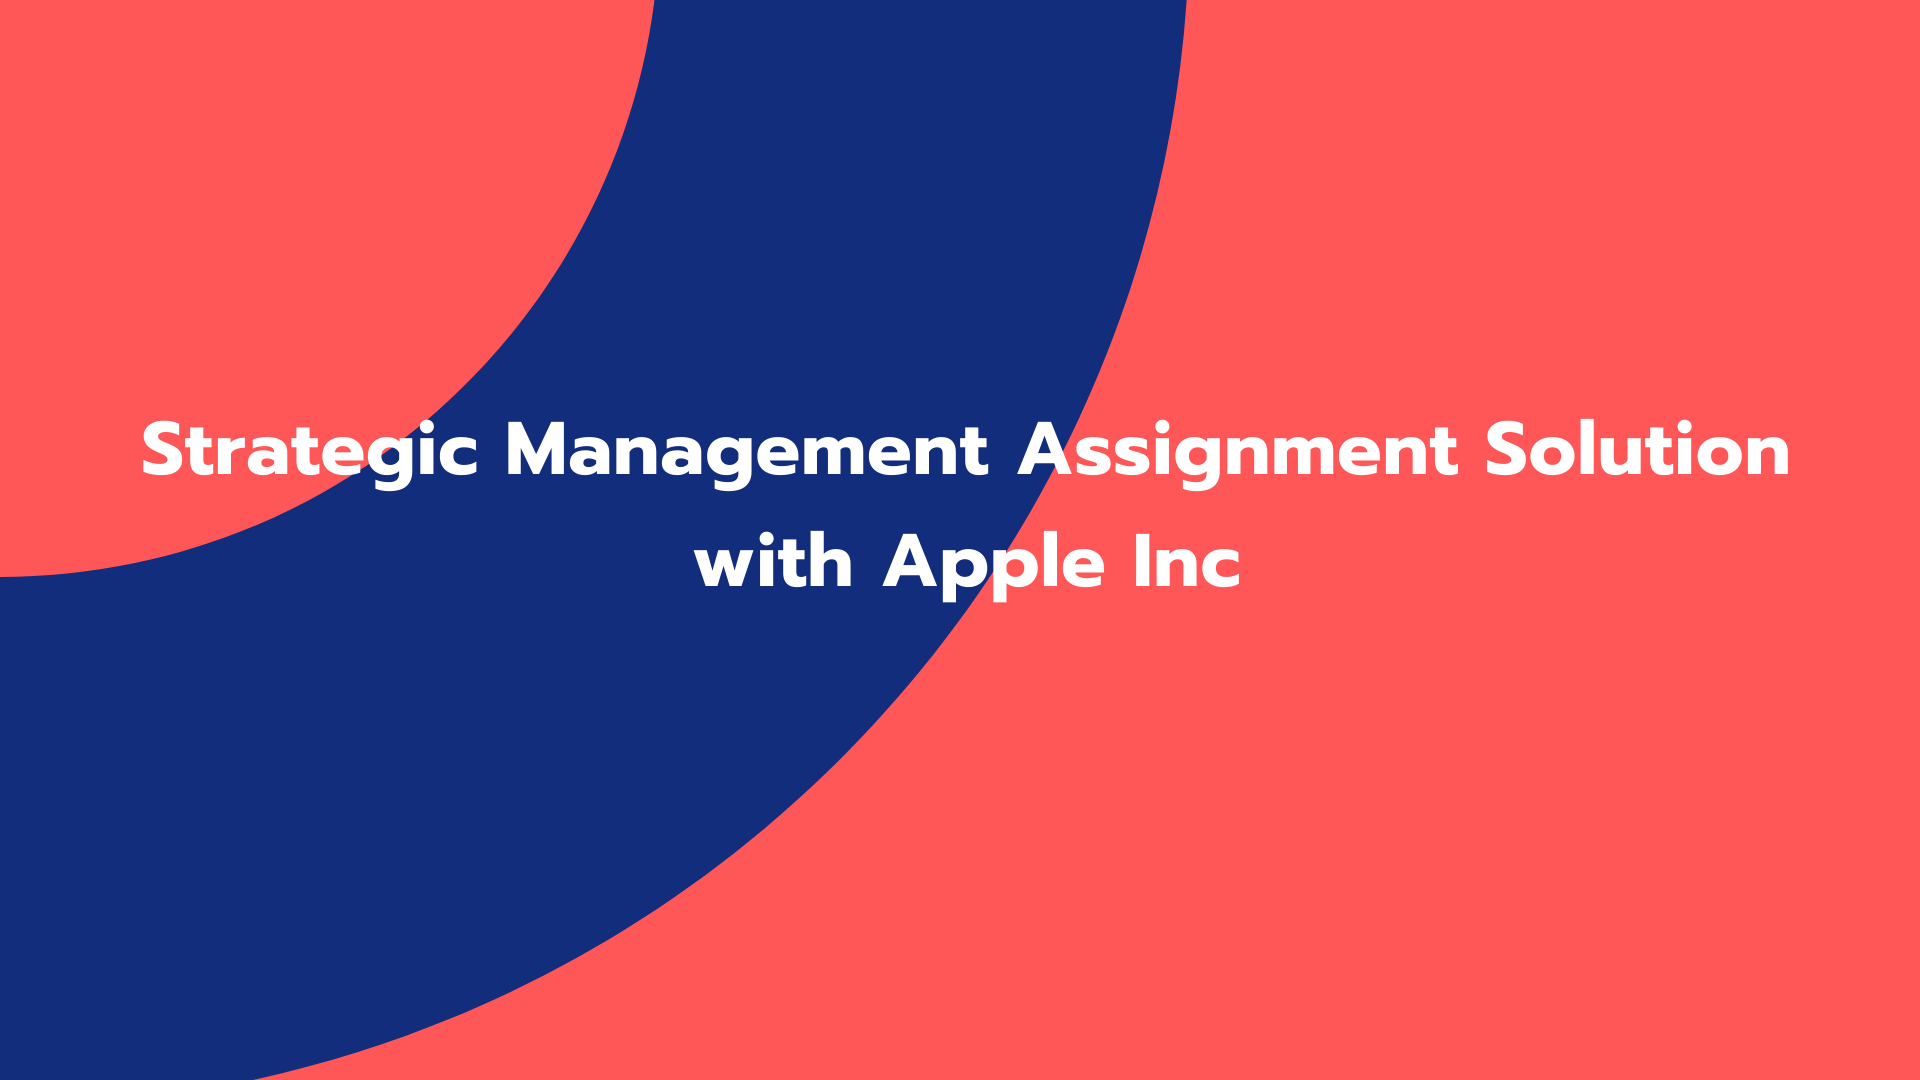 Strategic Management Assignment Solution with Apple Inc